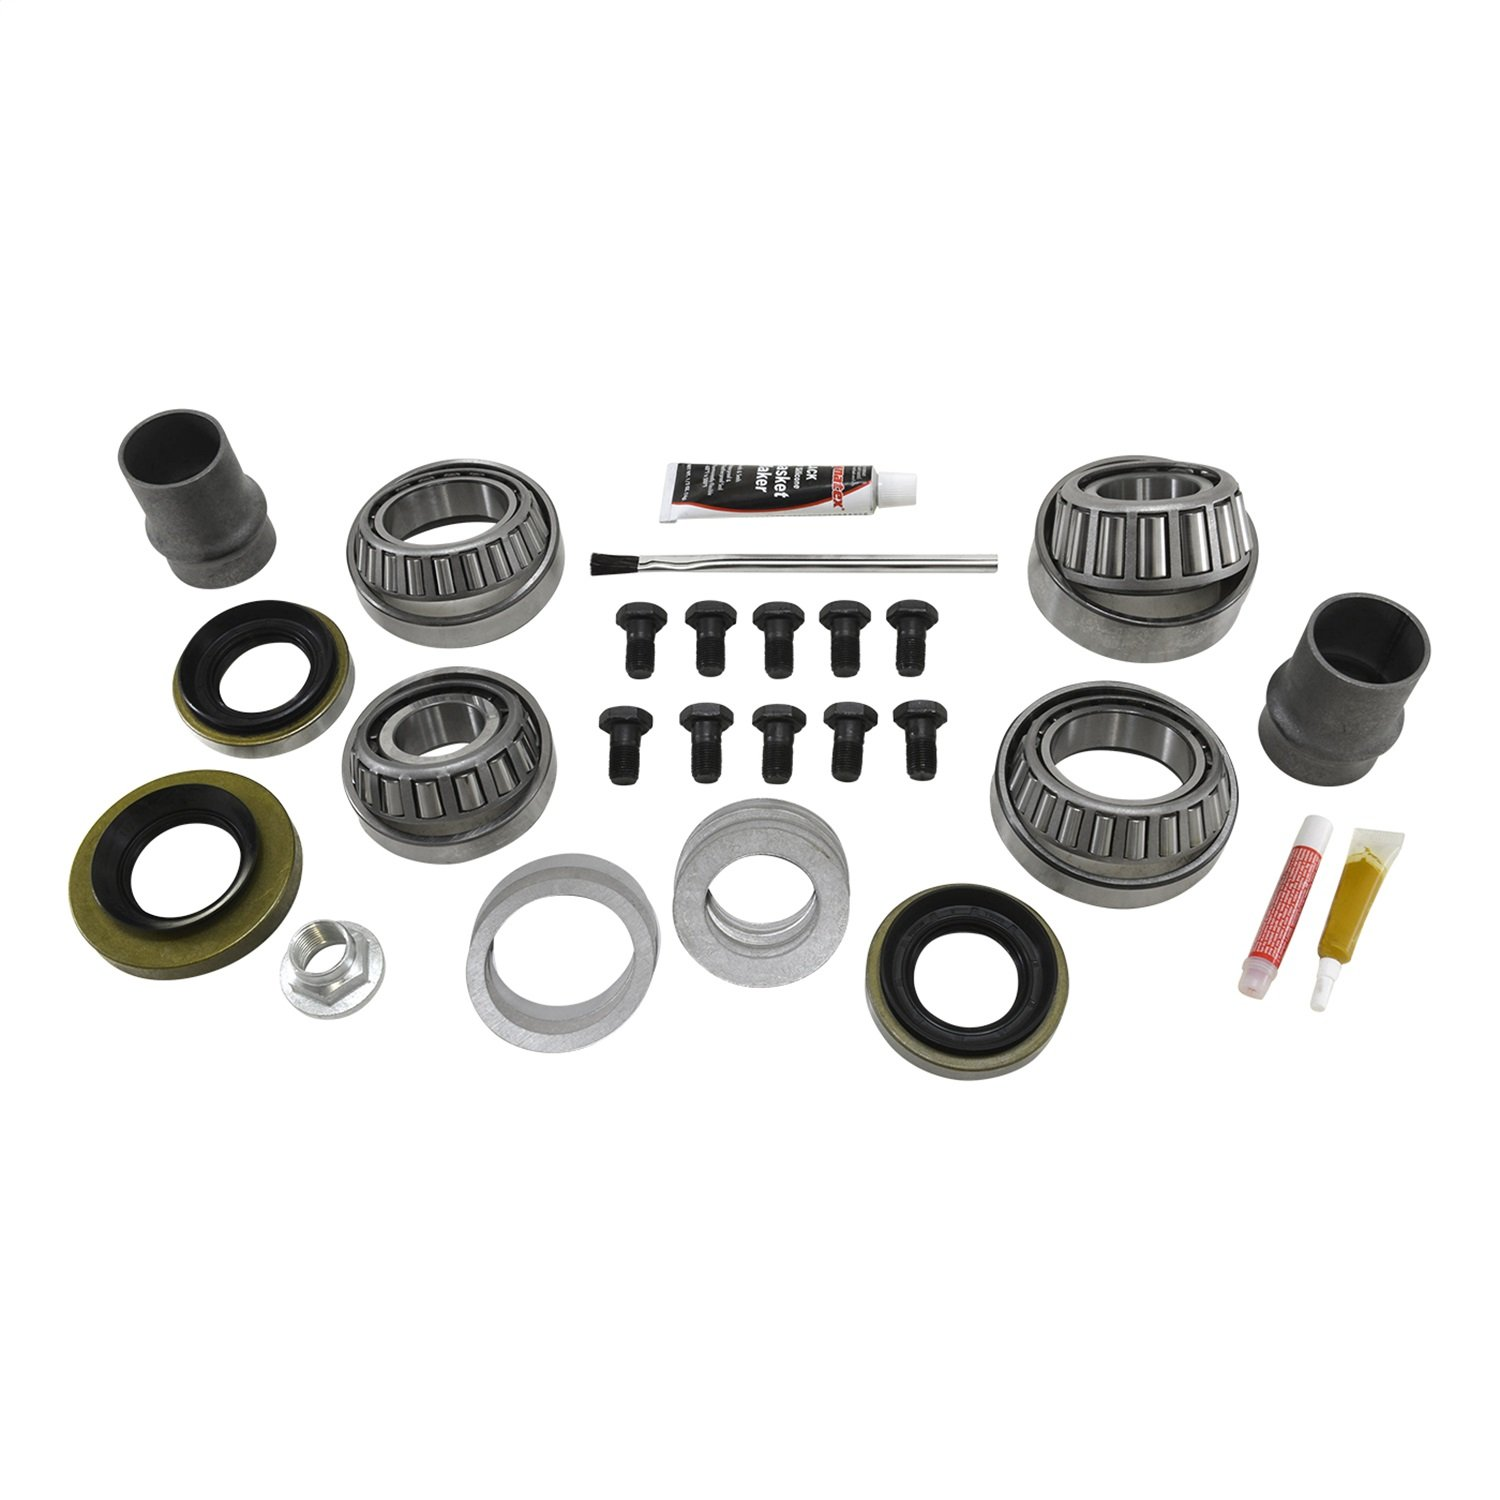 Yukon Gear & Axle (YK T7.5-4CYL) Master Overhaul Kit for Toyota 4-Cylinder Engine 7.5 IFS Differential